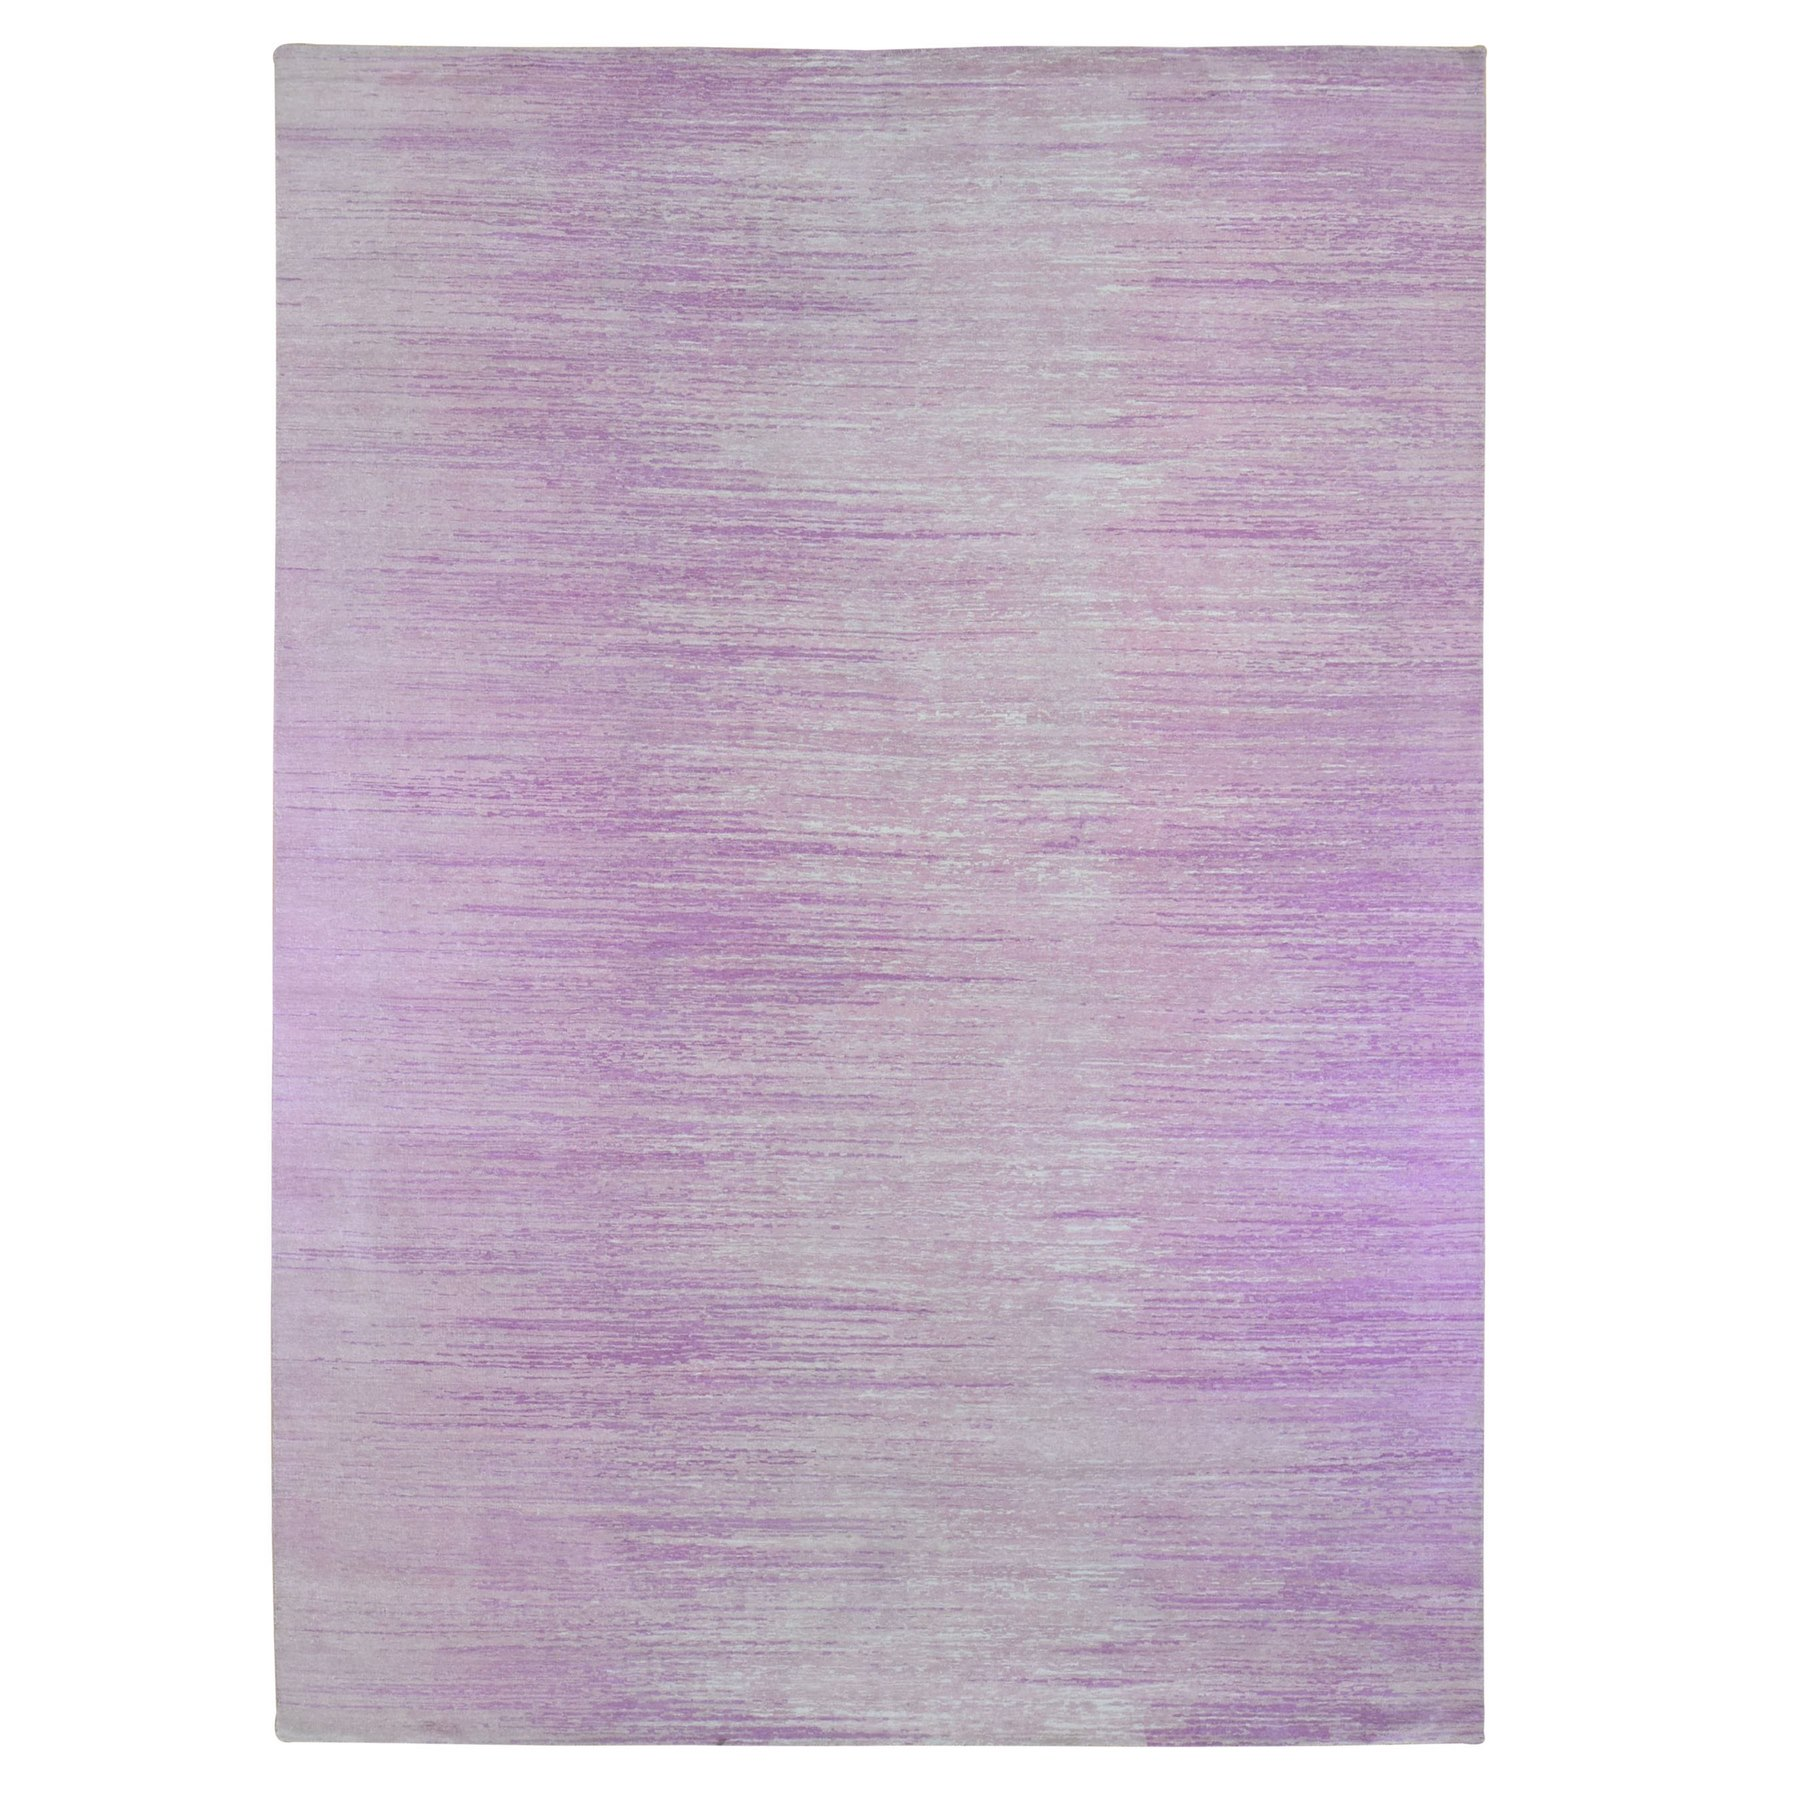 Mid Century Modern Collection Hand Knotted Pink Rug No: 1133696